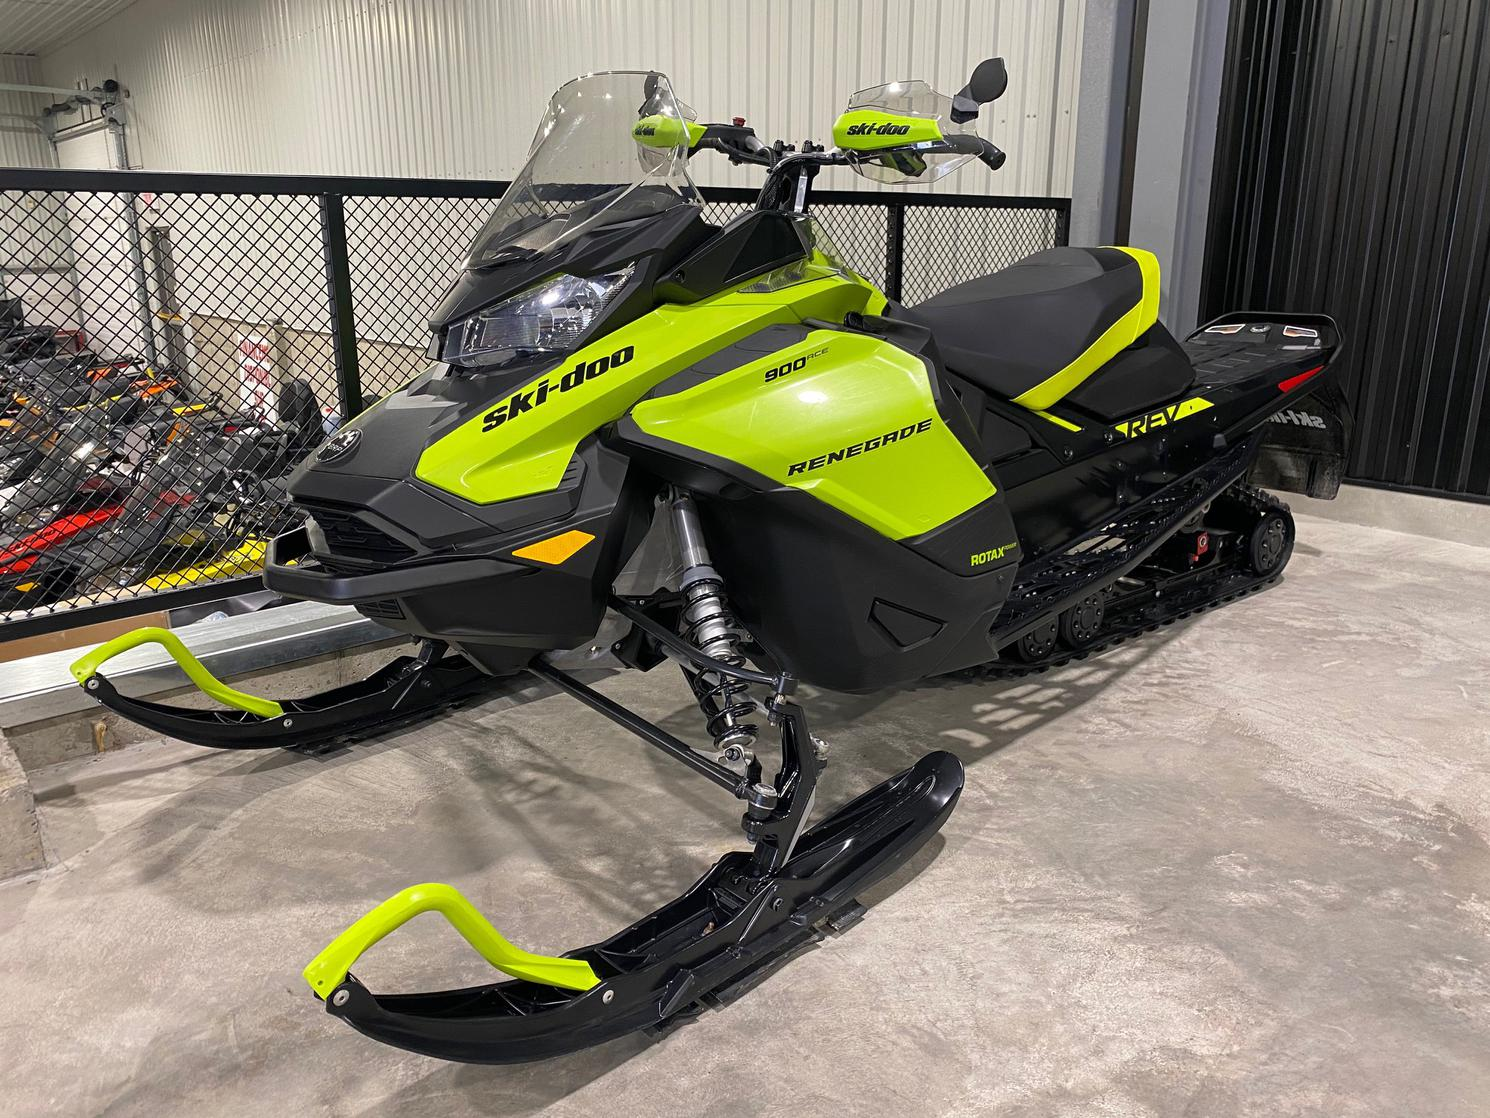 2020 Ski-Doo Renegade Adrenaline 900 ace 4 temps